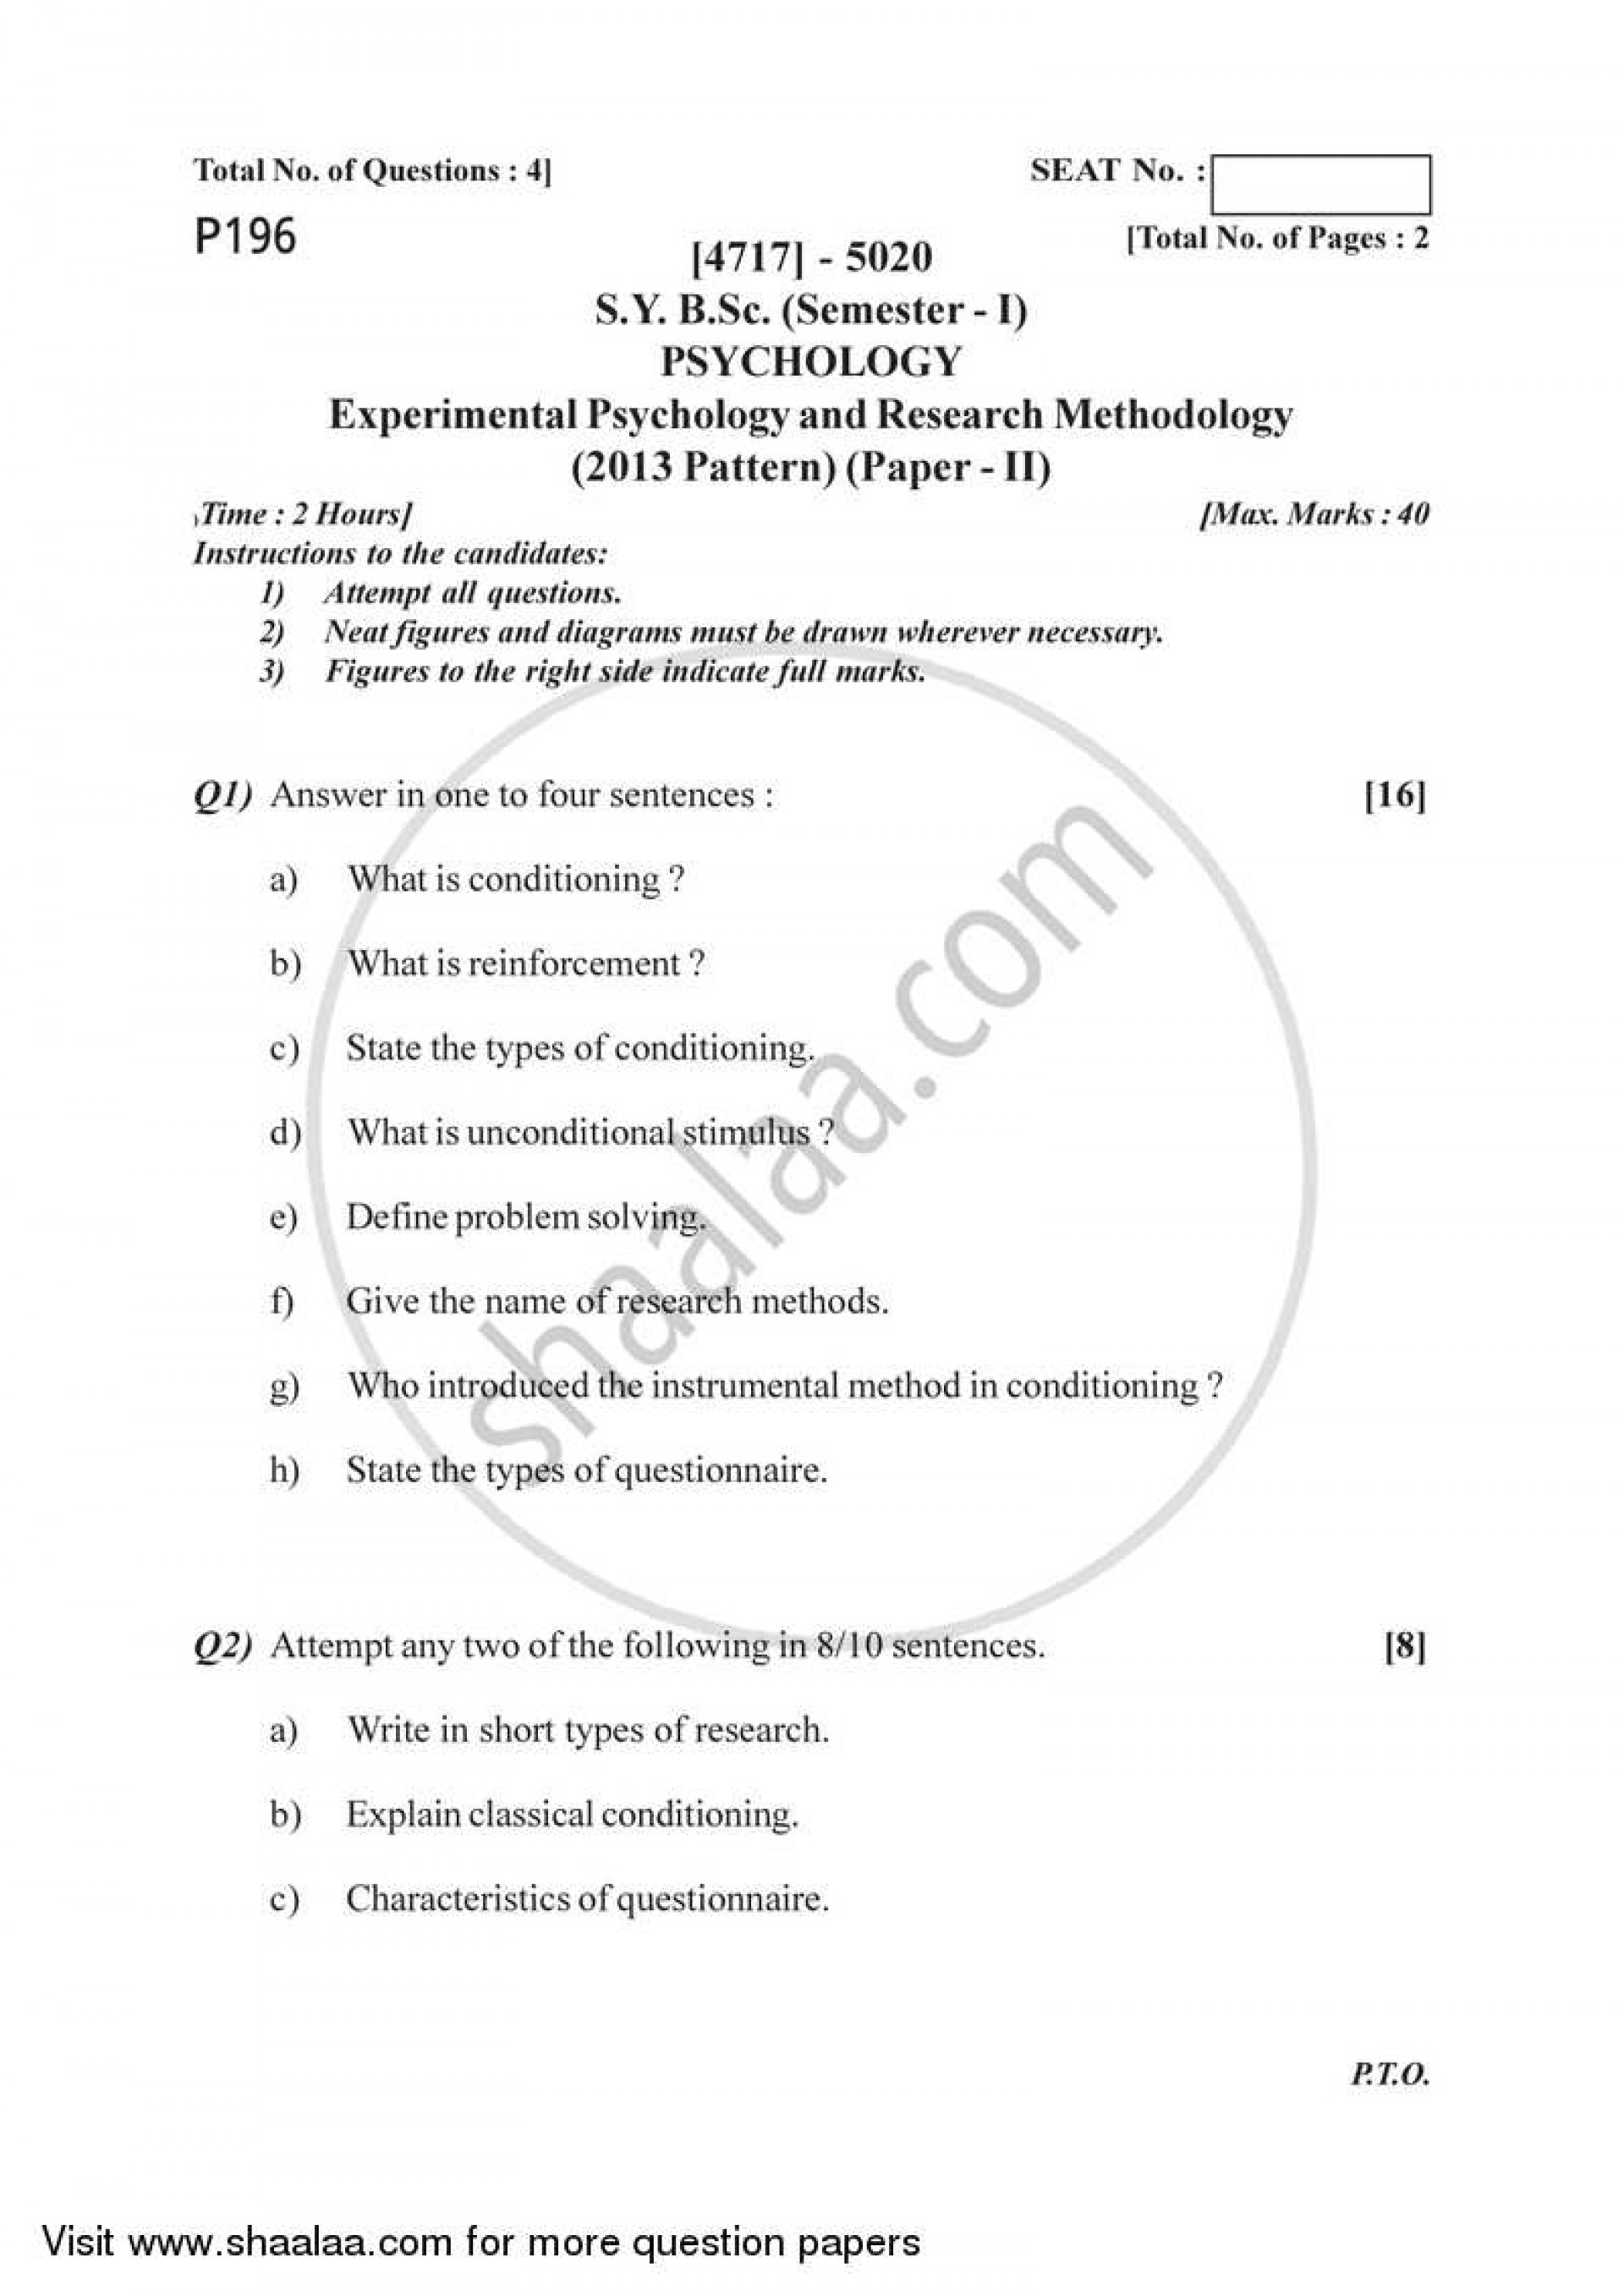 019 Research Paper On Psychology University Of Pune Bachelor Bsc Experimental Methodology Semester Sybsc Pattern 2e41c64dd7a97493da58d01b3ff66032b Wonderful Free Forensic Pdf Topics 1920